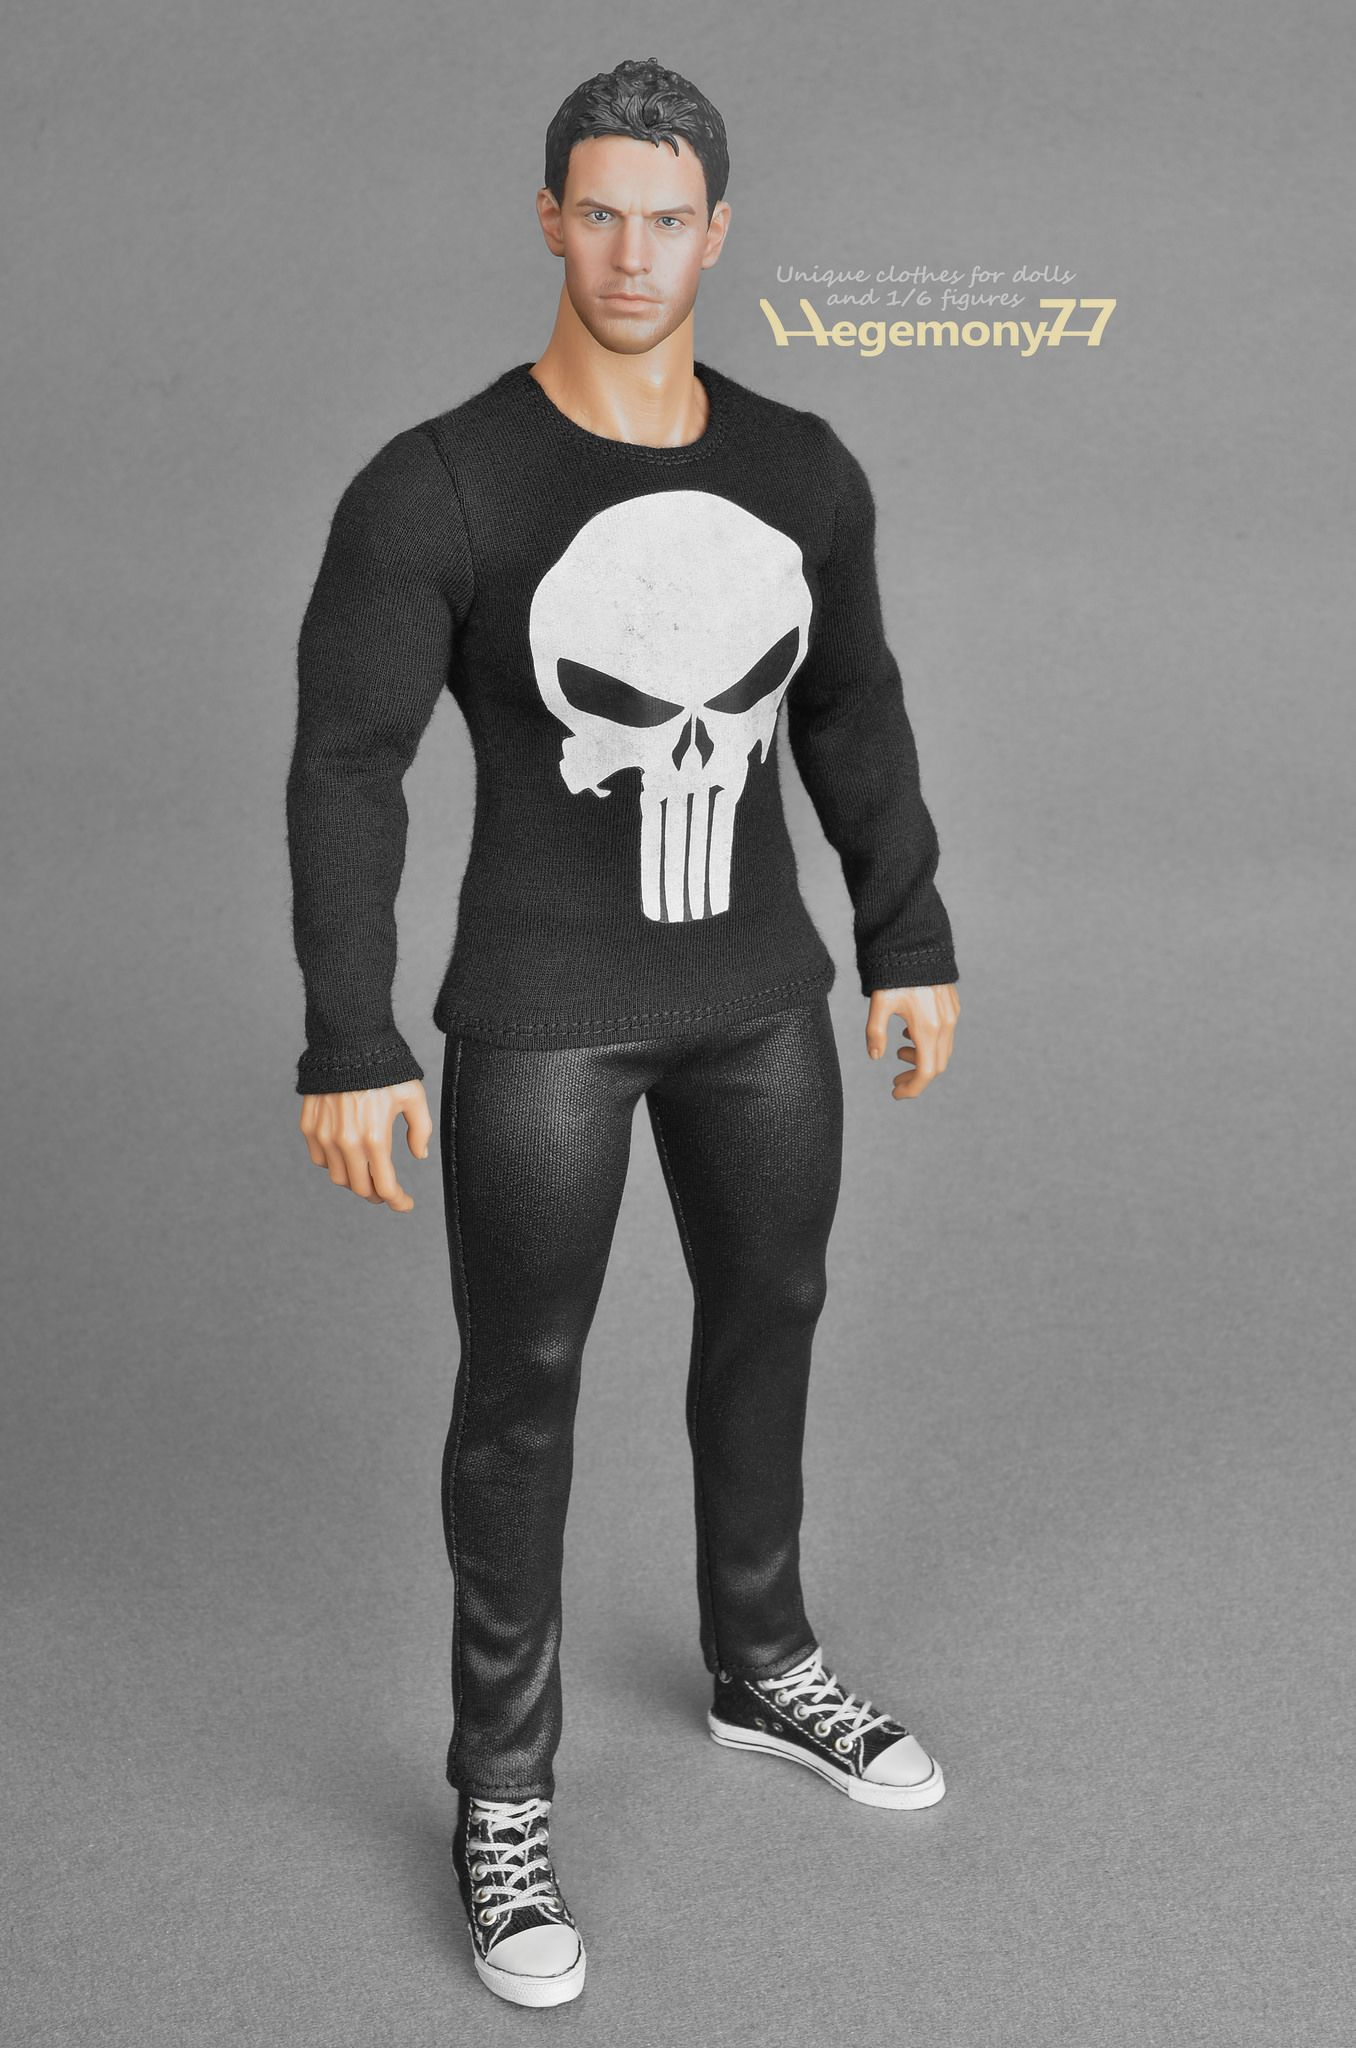 2 Pieces 1:6 Male Long Sleeve T-shirts for 12/'/' Action Figure Men Hot Toys